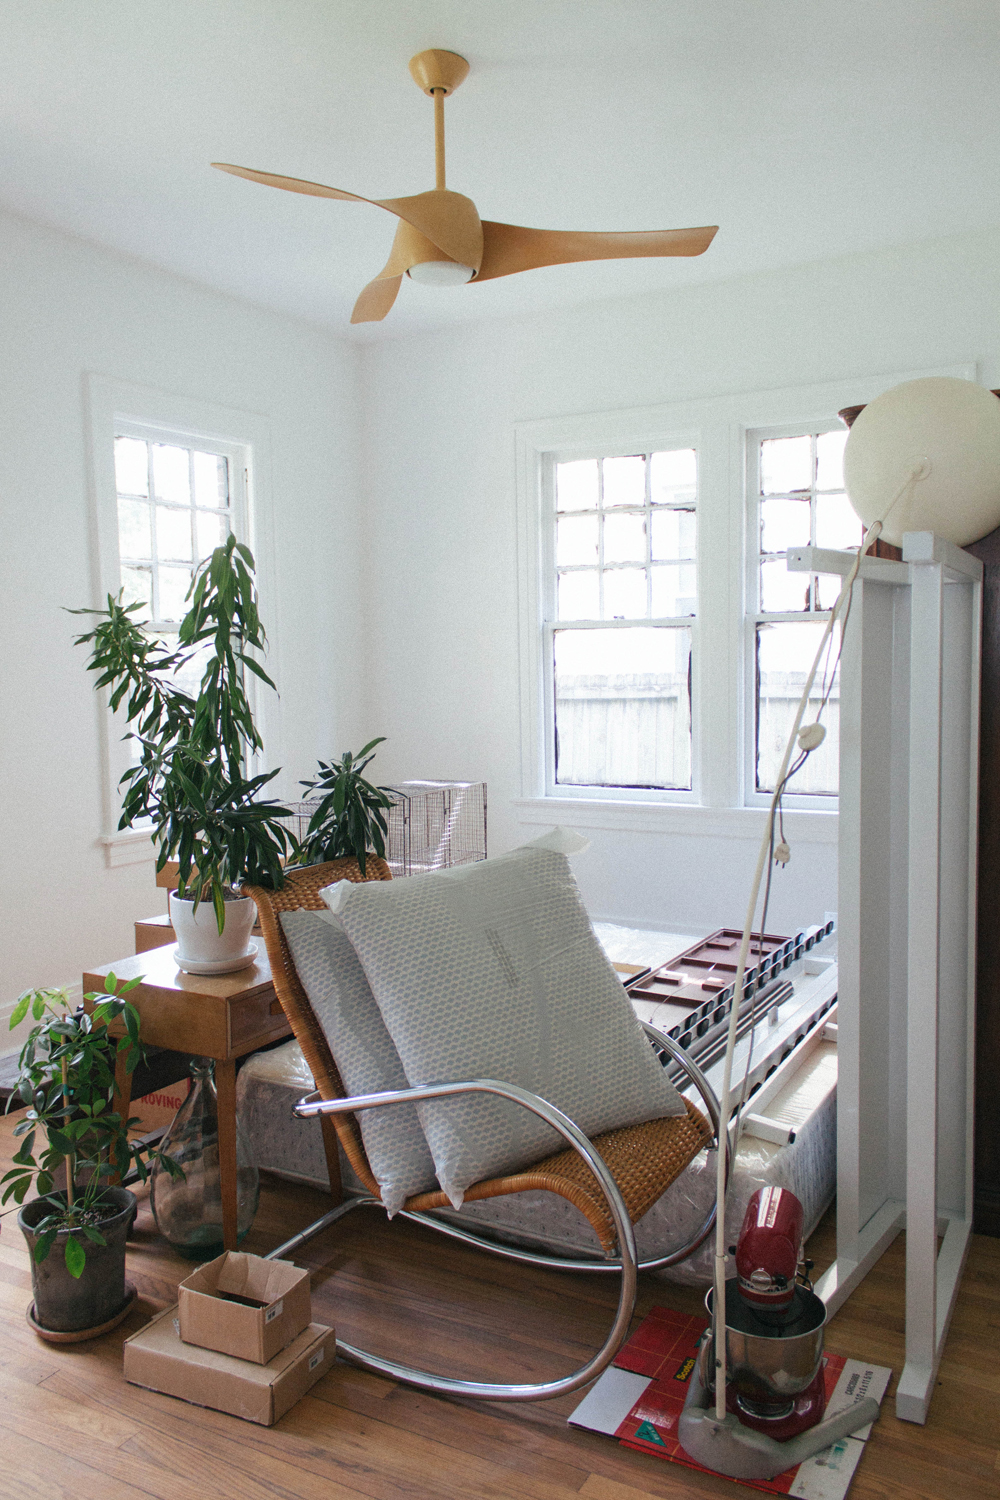 Good Bones | Renovation Update